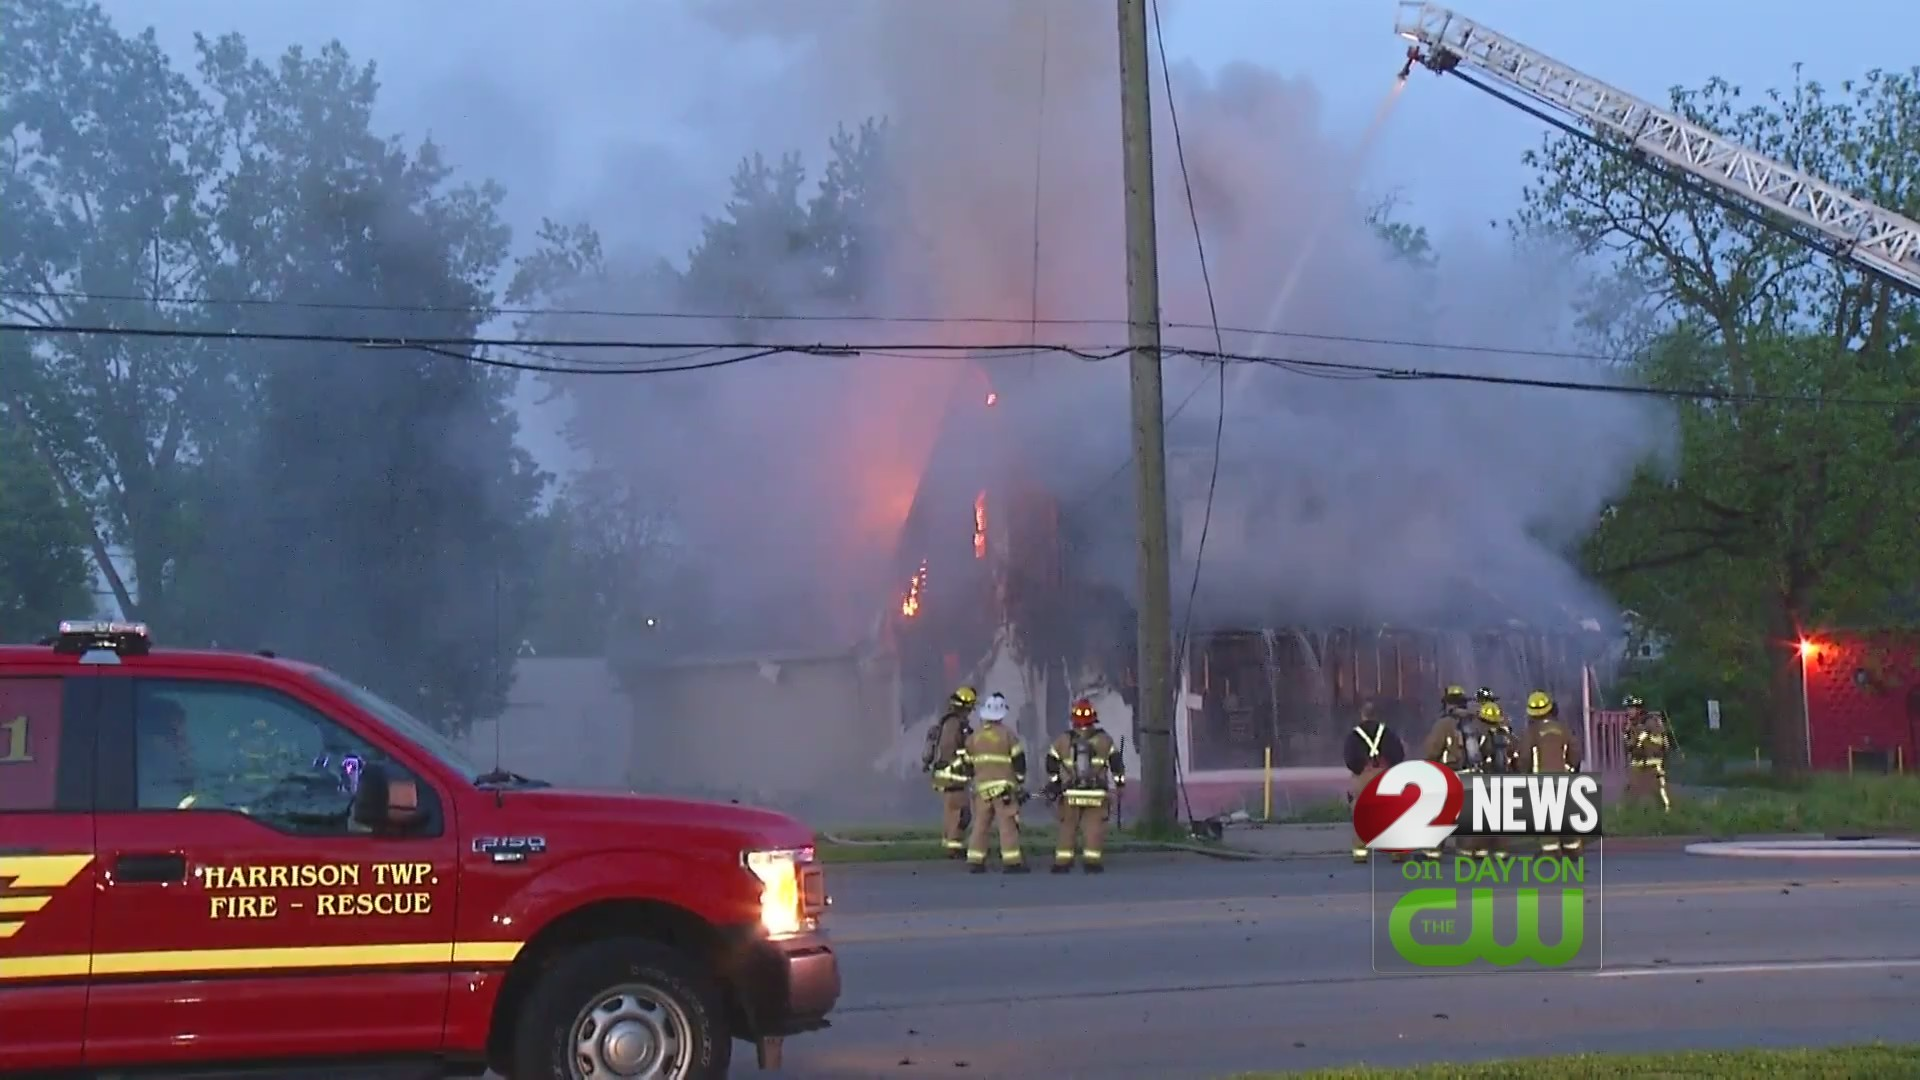 Fire crews battle blaze in Harrison Township